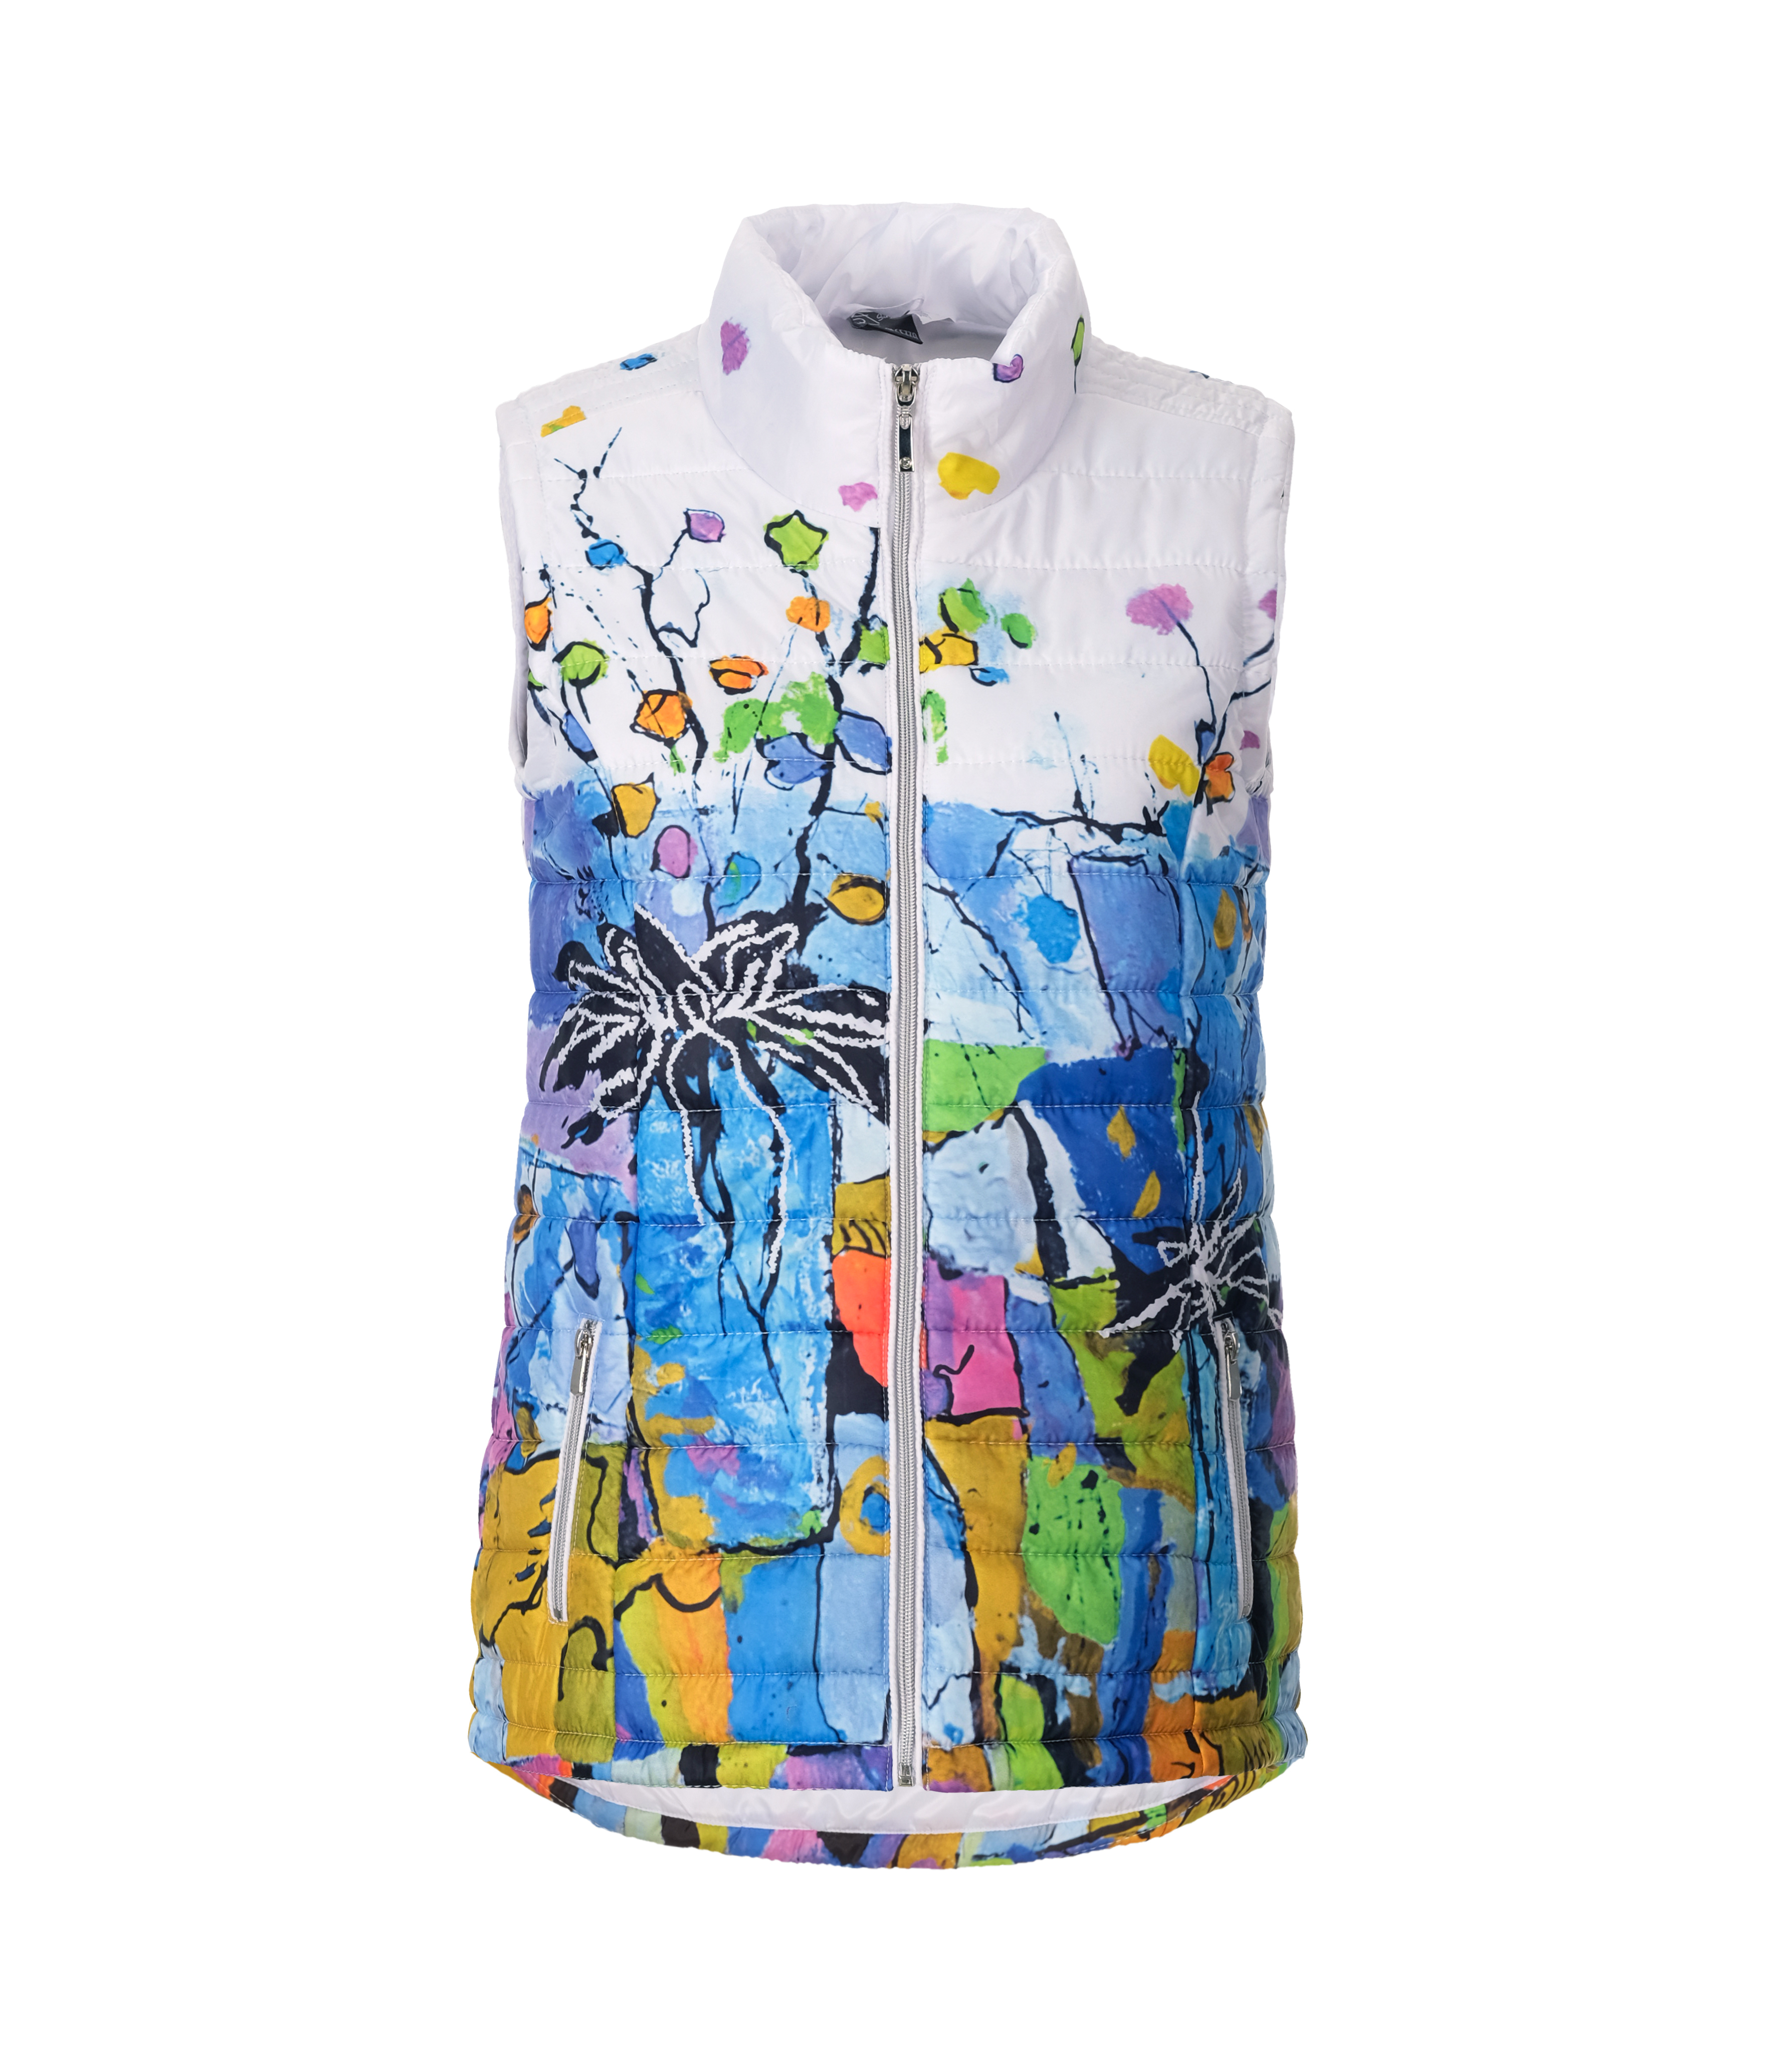 Simply Art Dolcezza: Still Life For A Wedding Party Puffer Art Vest (1 Left!) Dolcezza_SimplyArt_21801